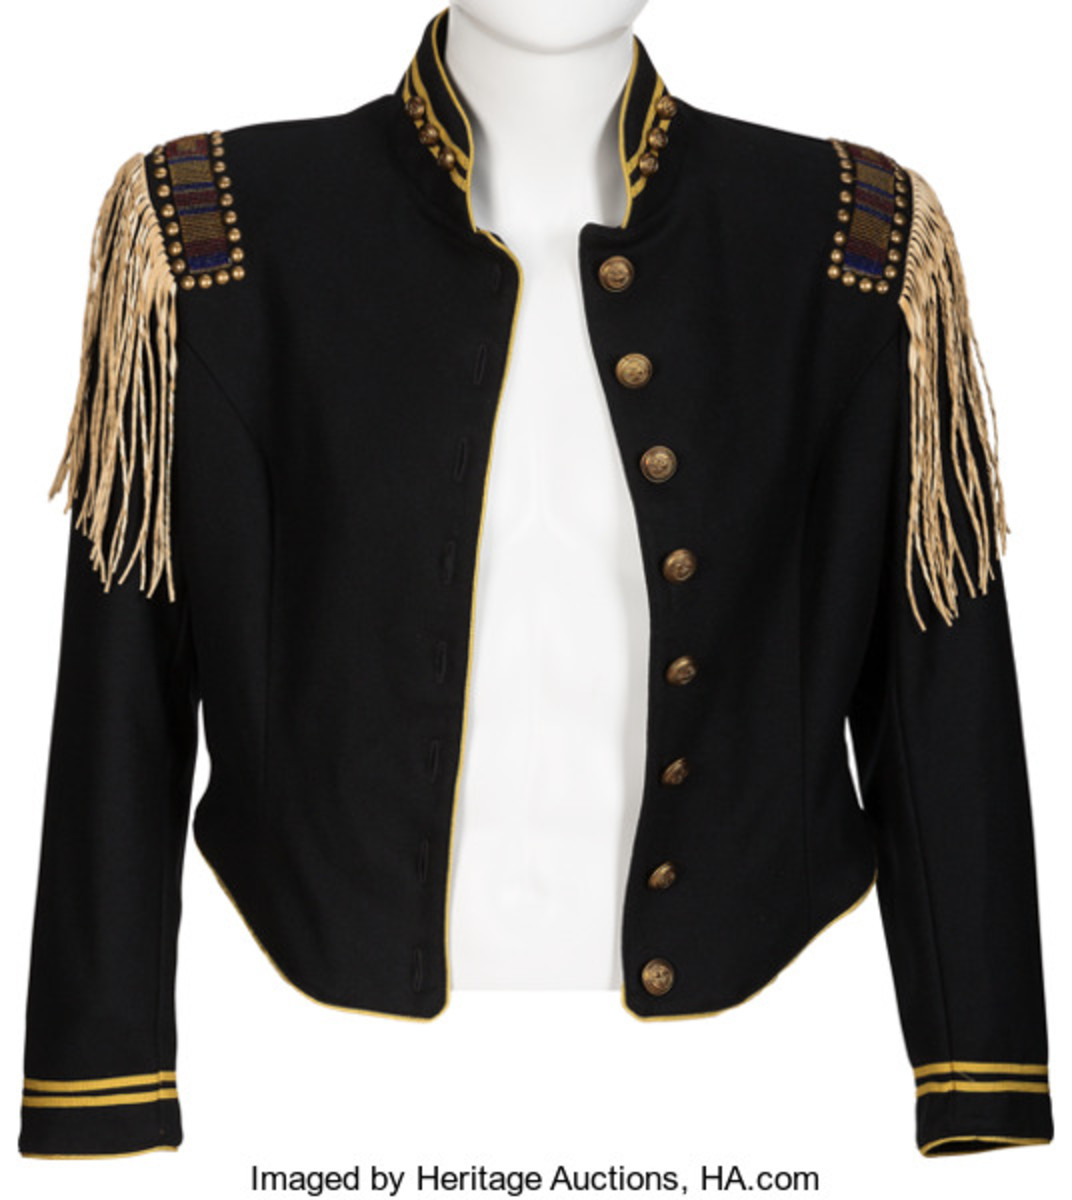 Tom Petty Stage Worn Cavalry Jacket (Circa 2000). Courtesy of Heritage Auctions.